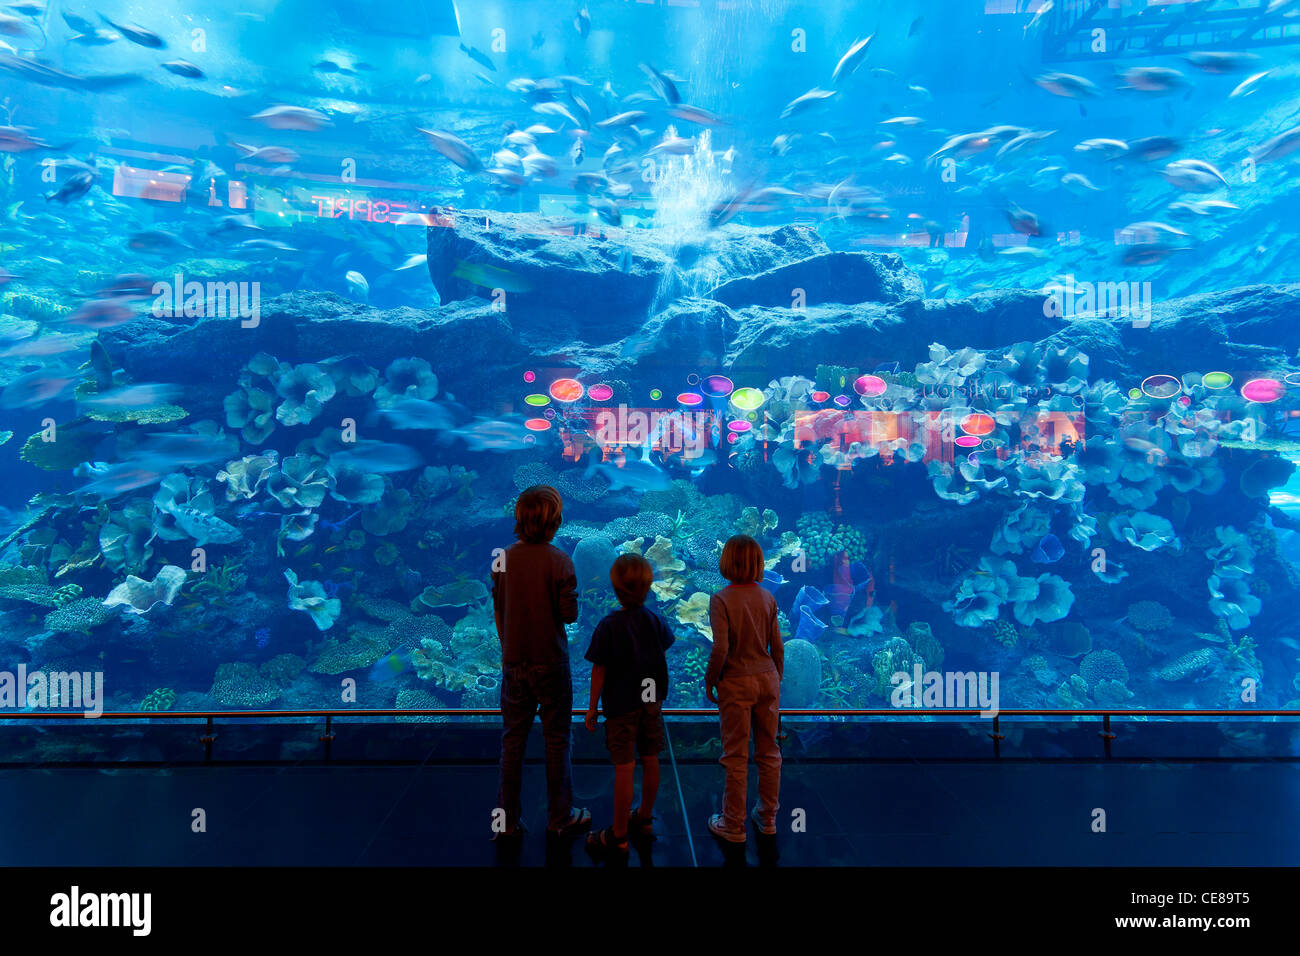 Dubai, Small crowd of visitors gather at massive window of Dubai Aquarium at Dubai Mall - Stock Image